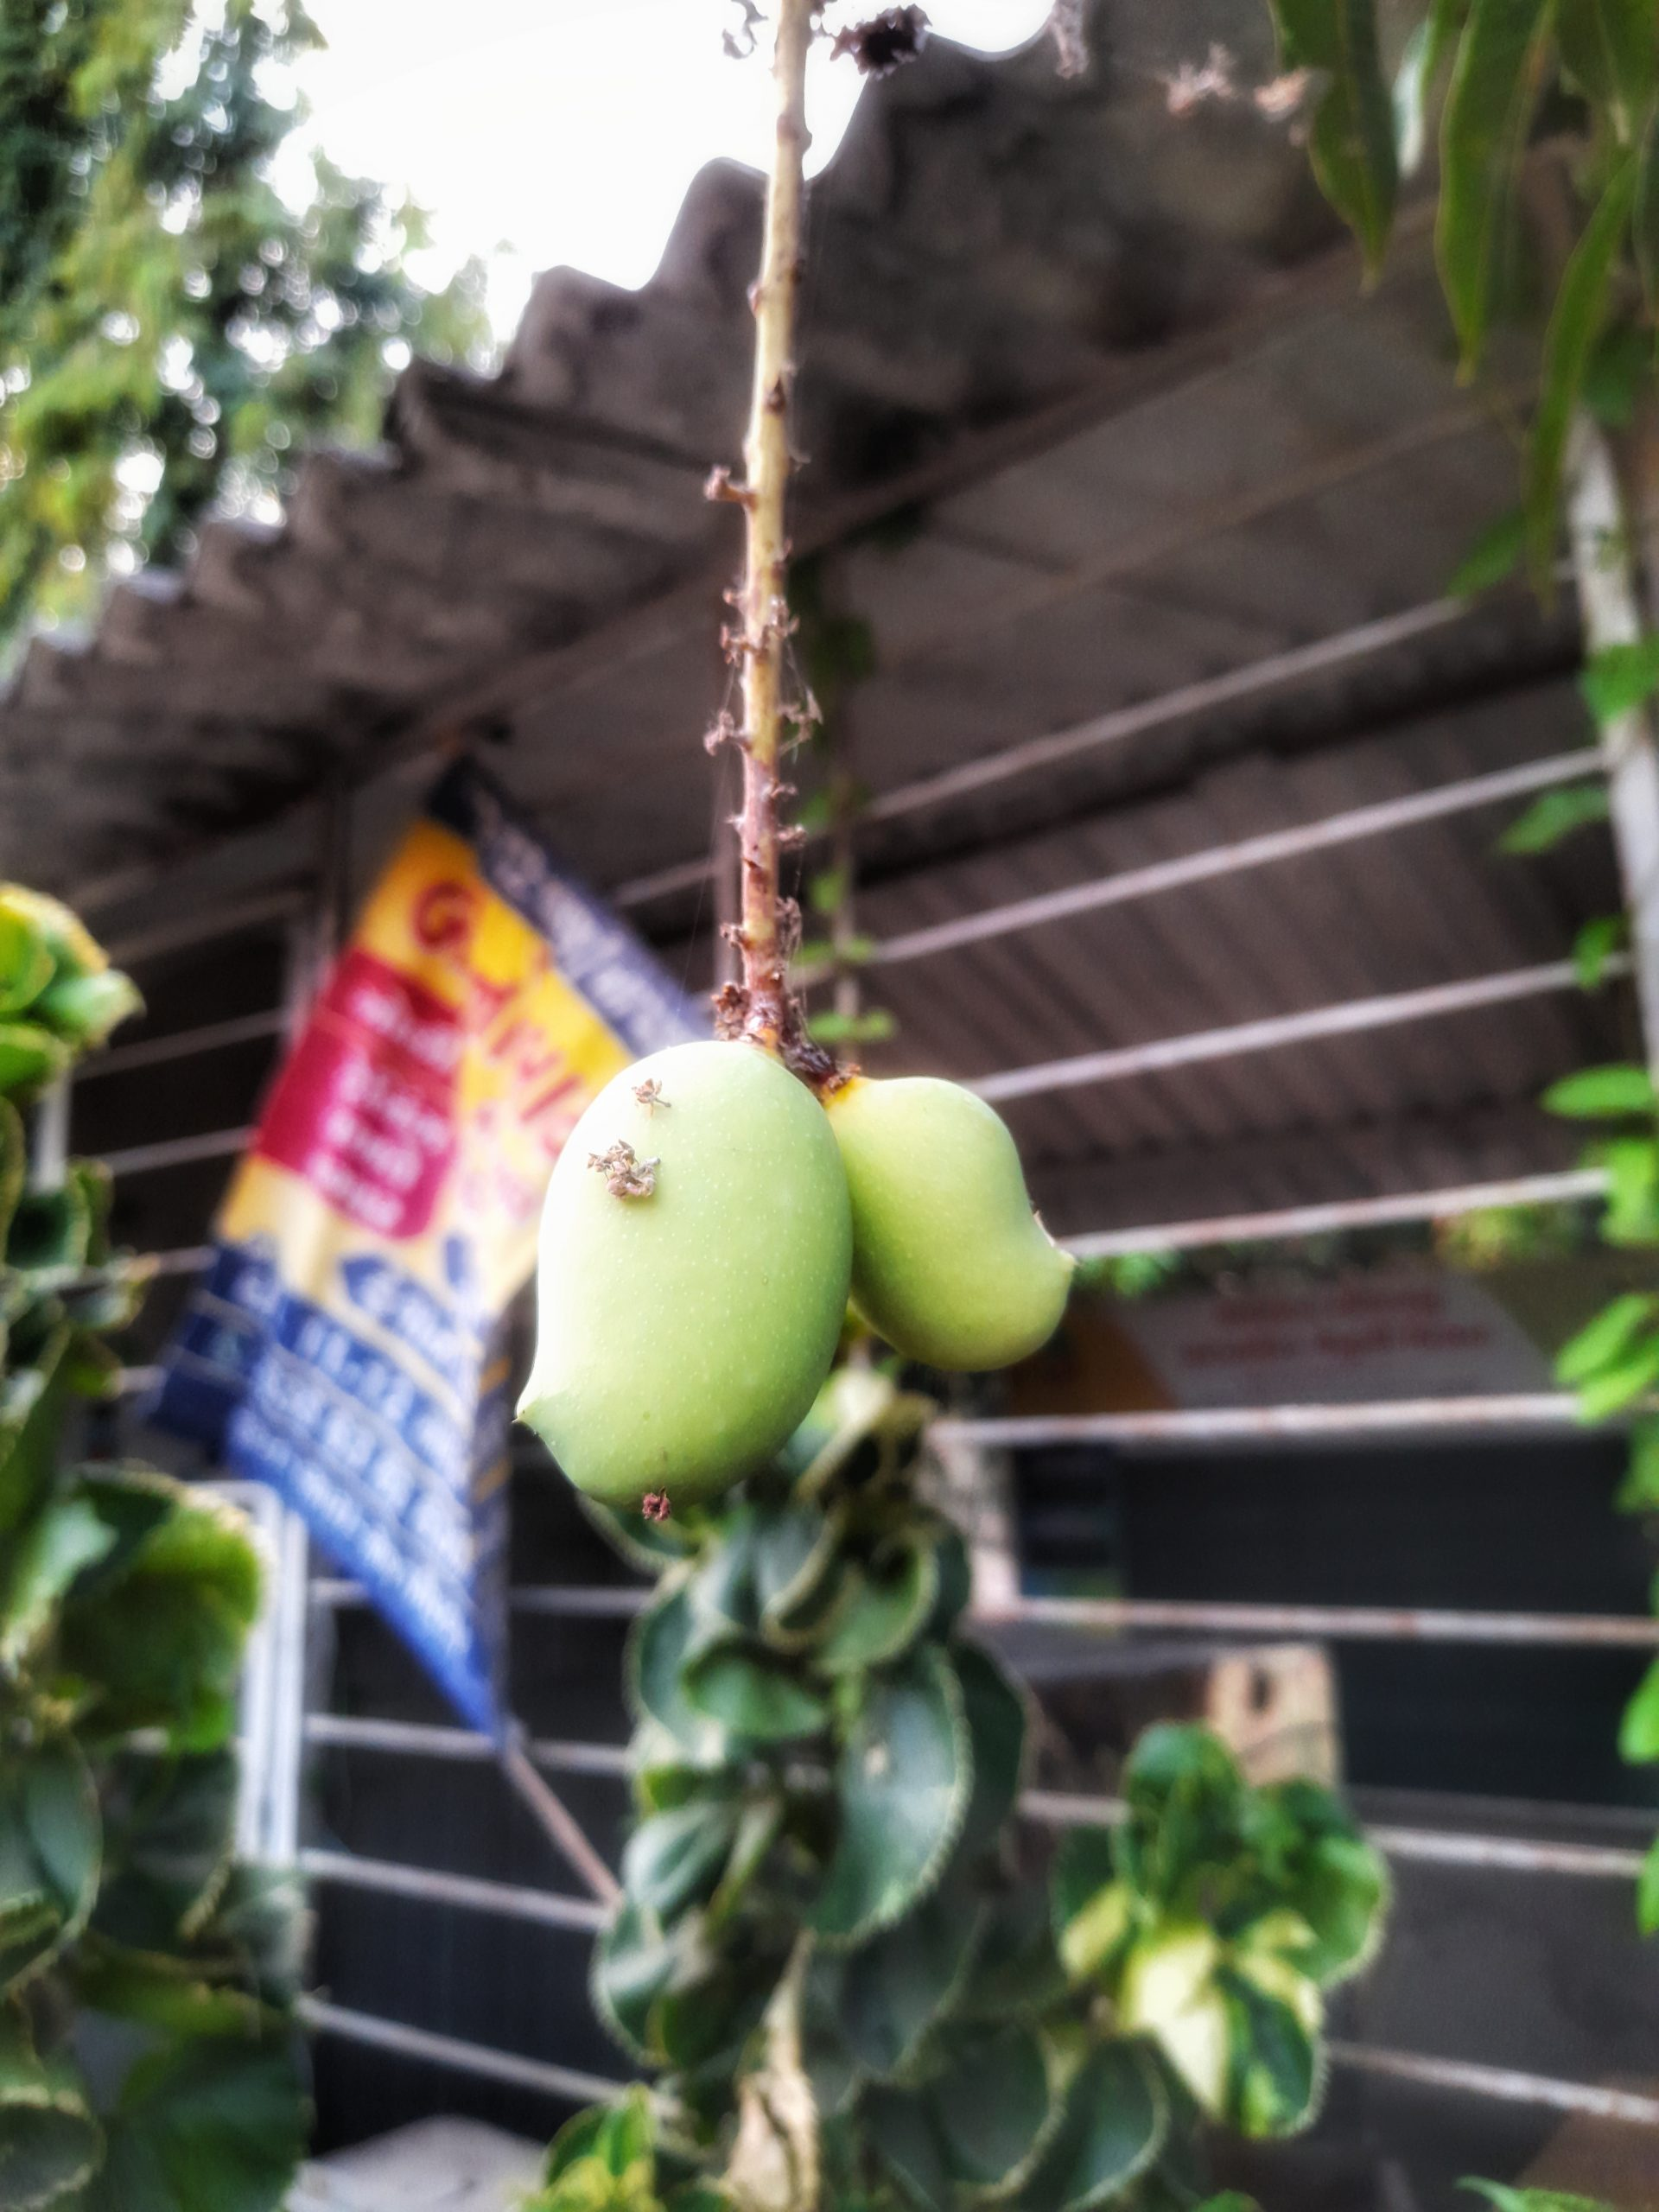 Hanging green mangoes